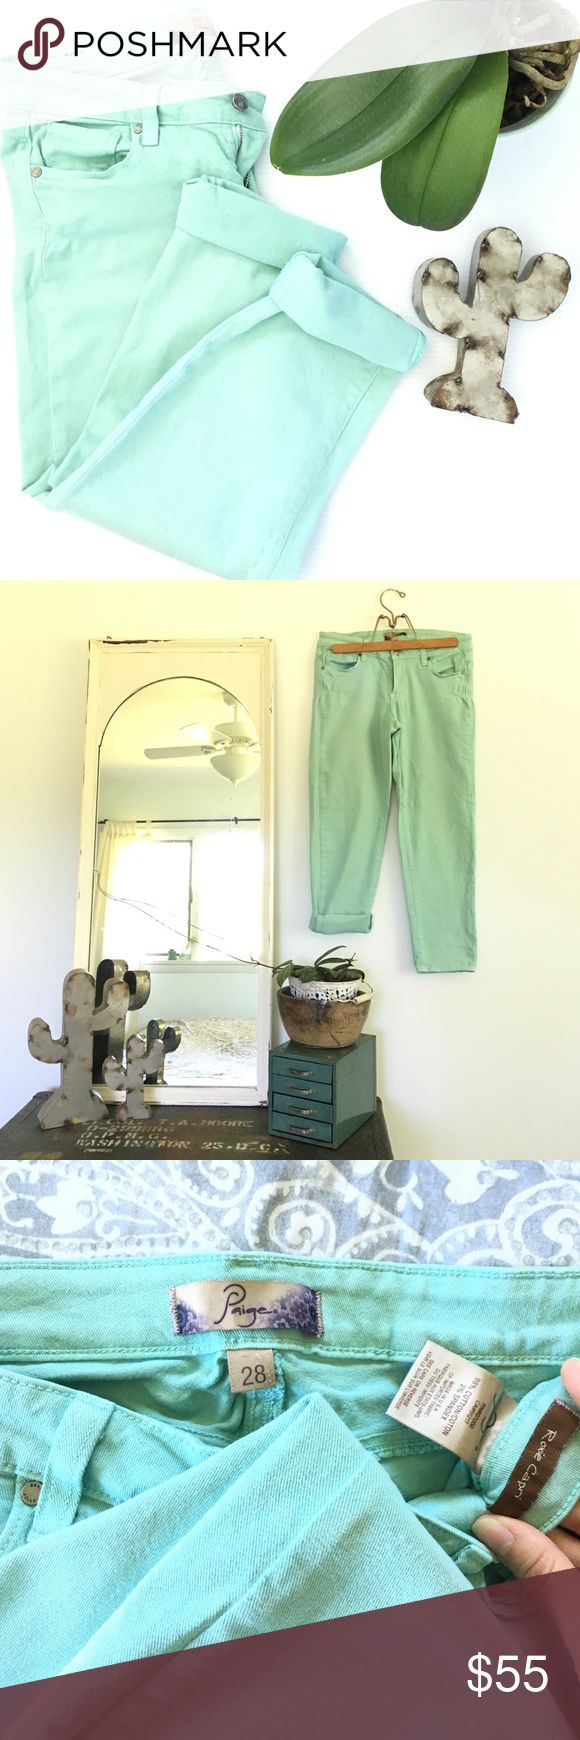 Listing! Paige Roxie mint capris Adorable Paige Roxie capris in mint. Size 28. In great condition! One *tiny* little spot on the right leg by the seam. See picture three. Not at all noticeable, I just wanted to mention. 98% cotton. 2% spandex. 14.5 inch waist. 8 inch rise. 24 inch inseam. Stock image is the same capris, just different color. So cute for summer! Paige Jeans Pants Capris